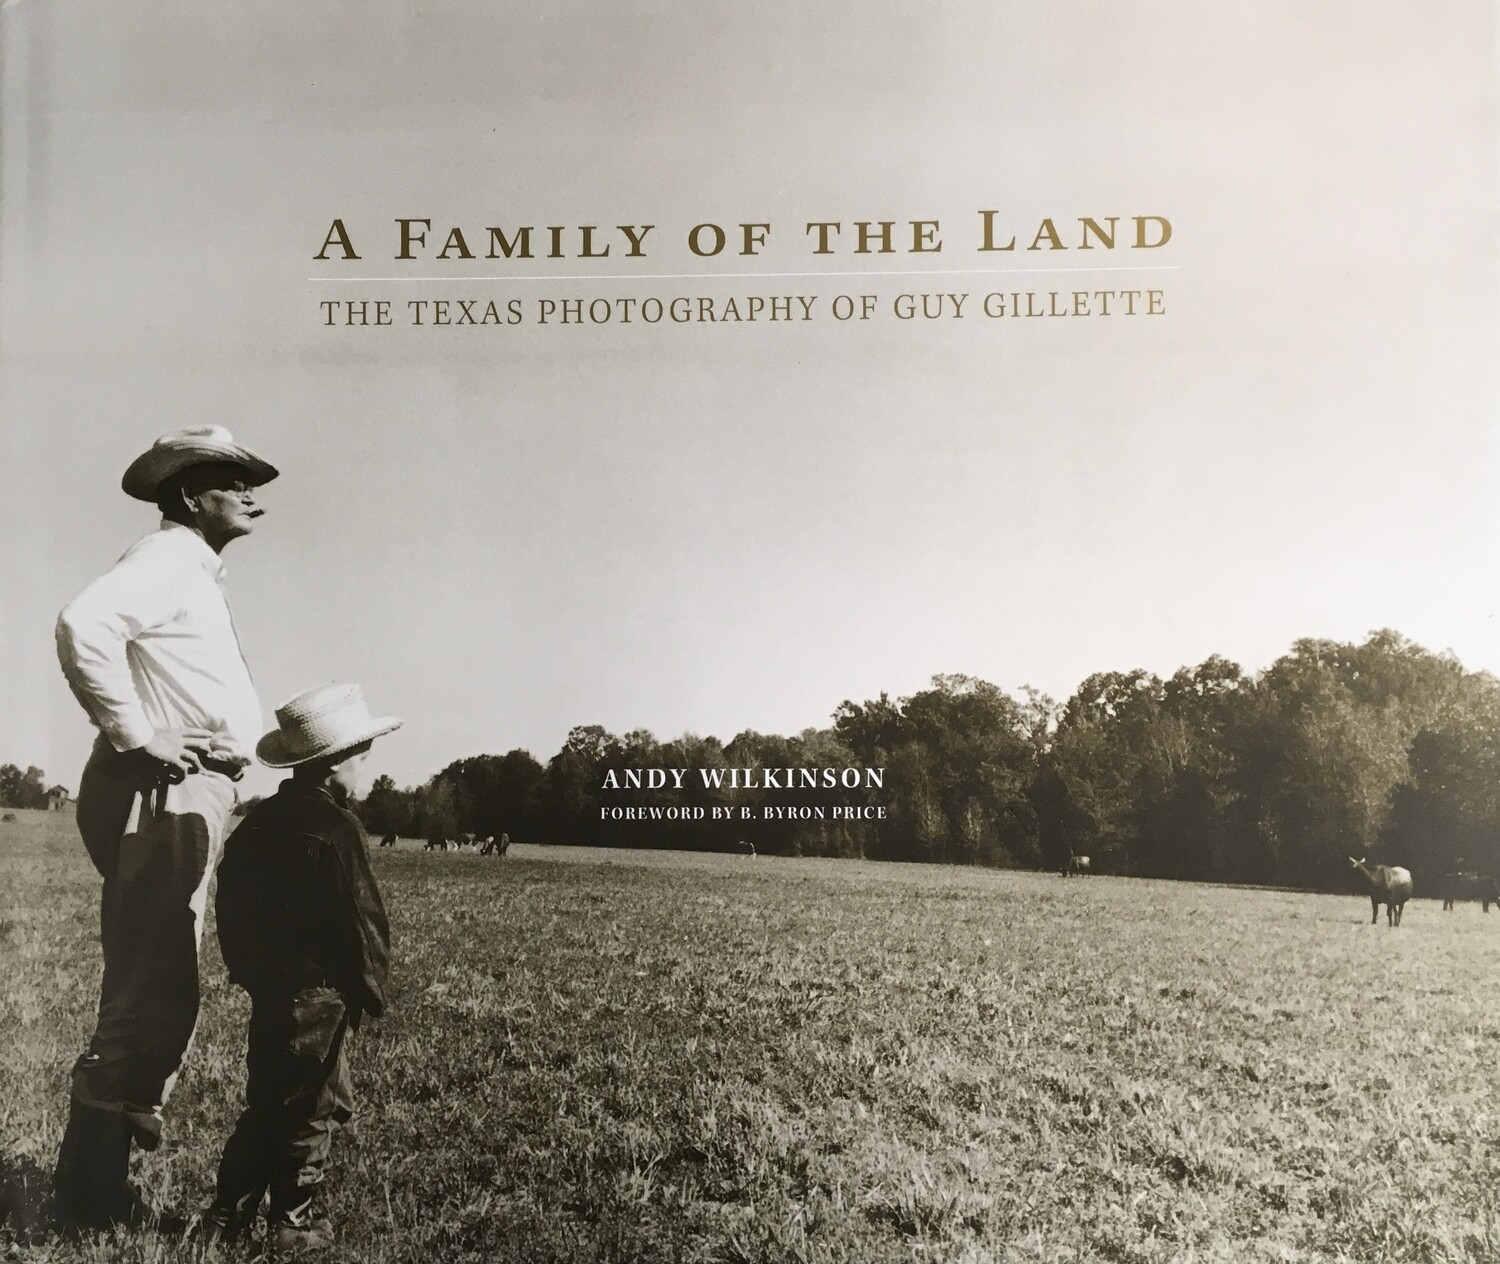 A Family of the Land